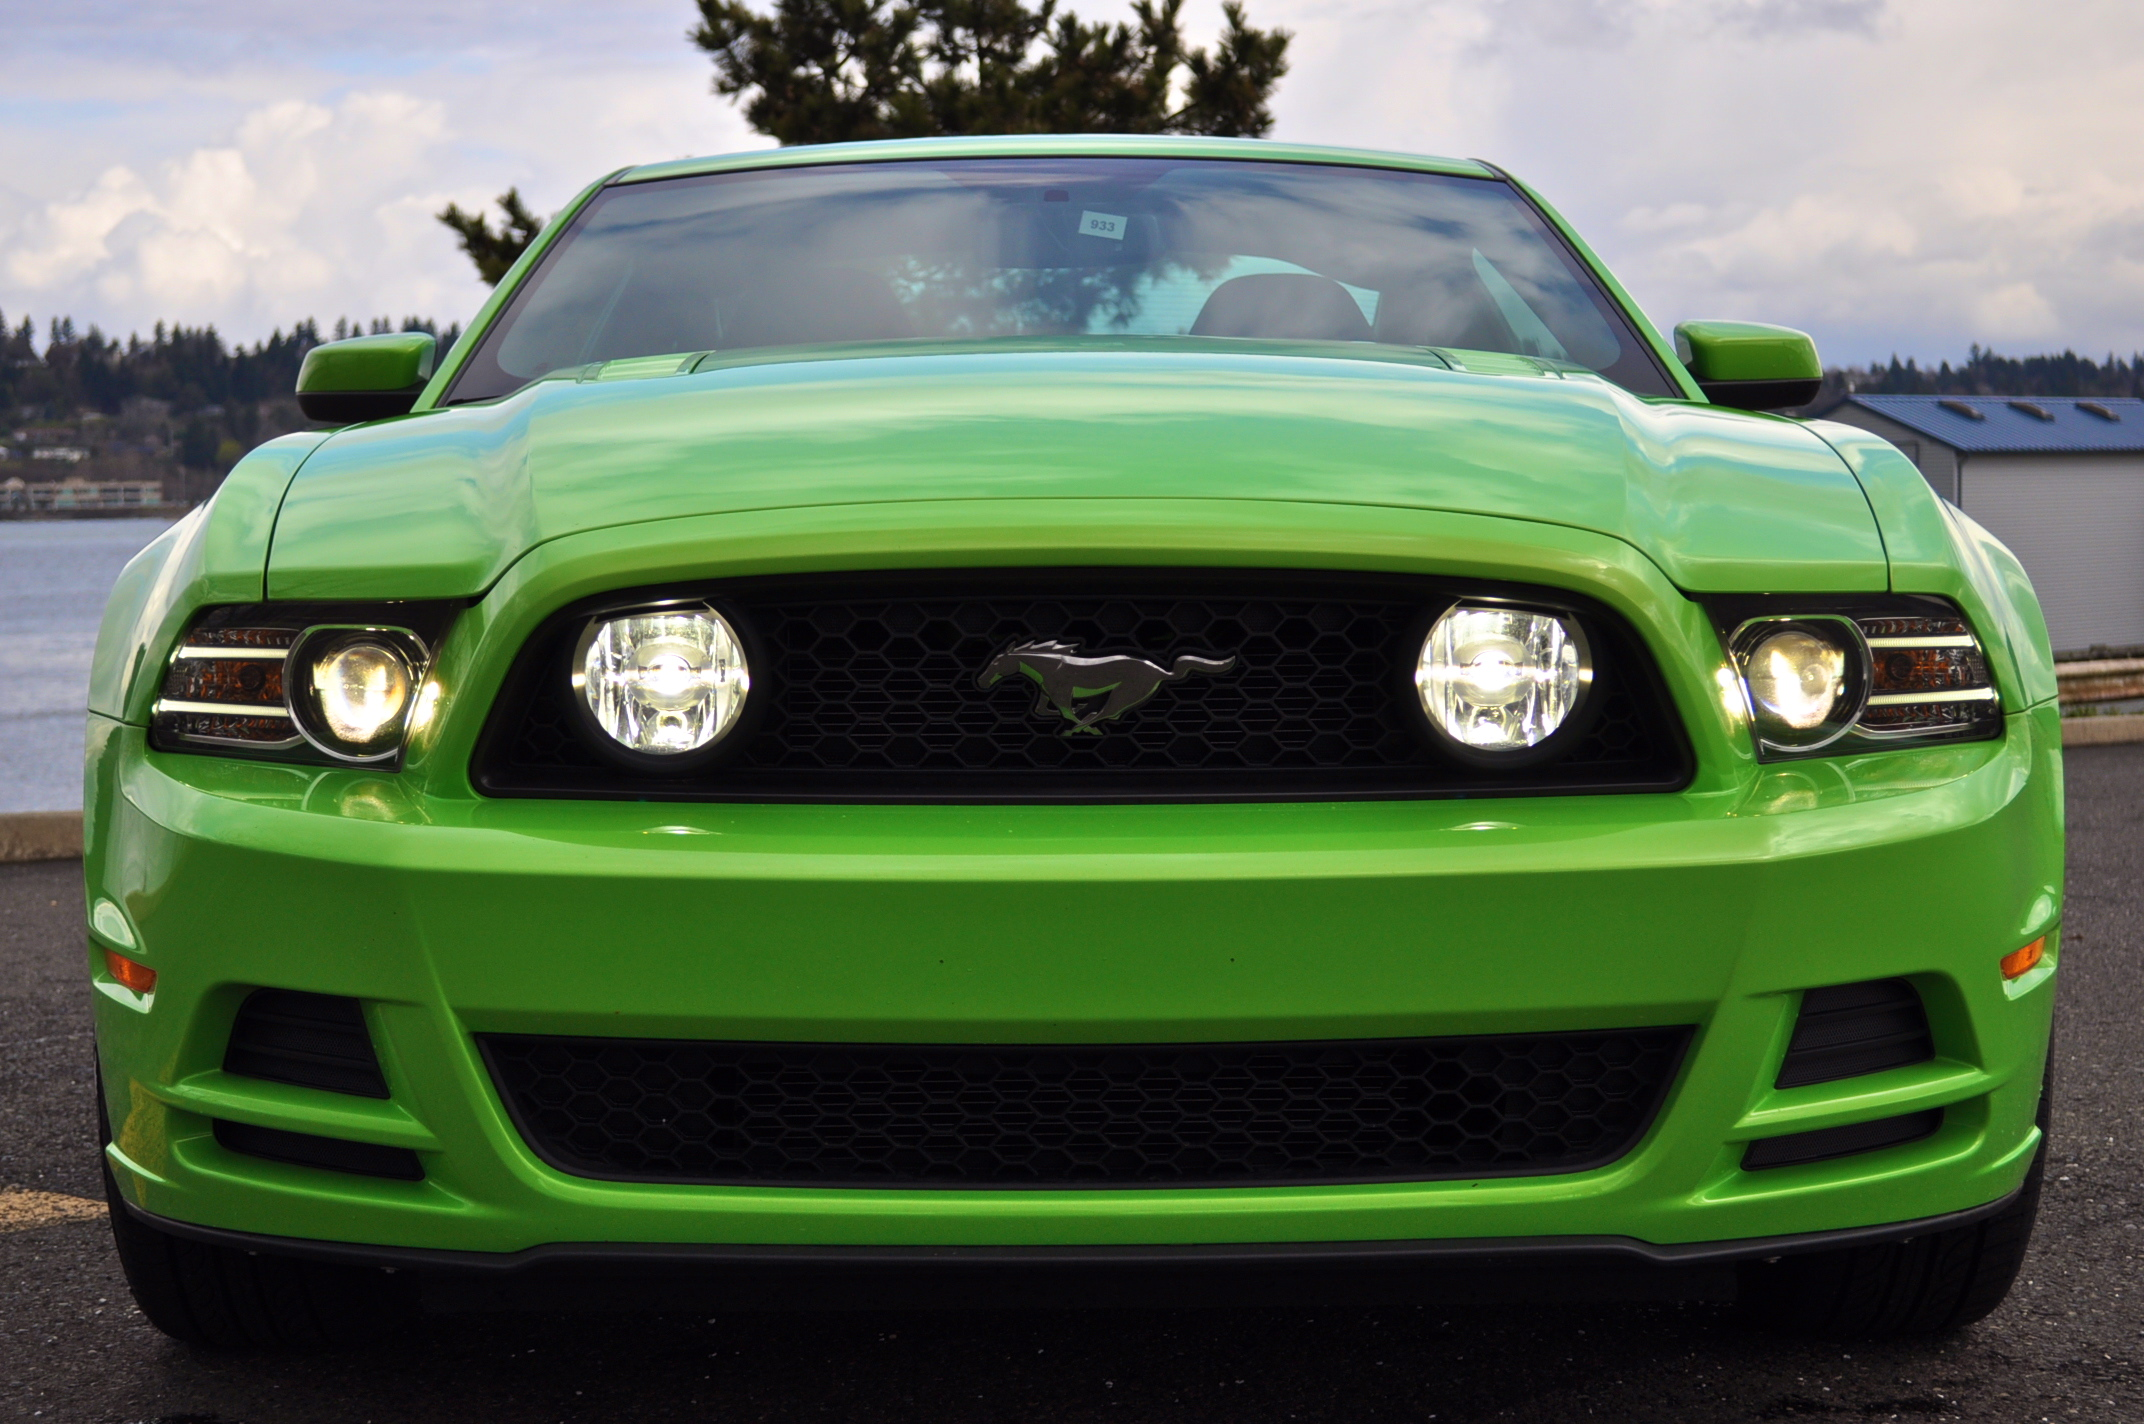 Ford Mustang Is The Most Popular Car Bought On Ebay In 2012